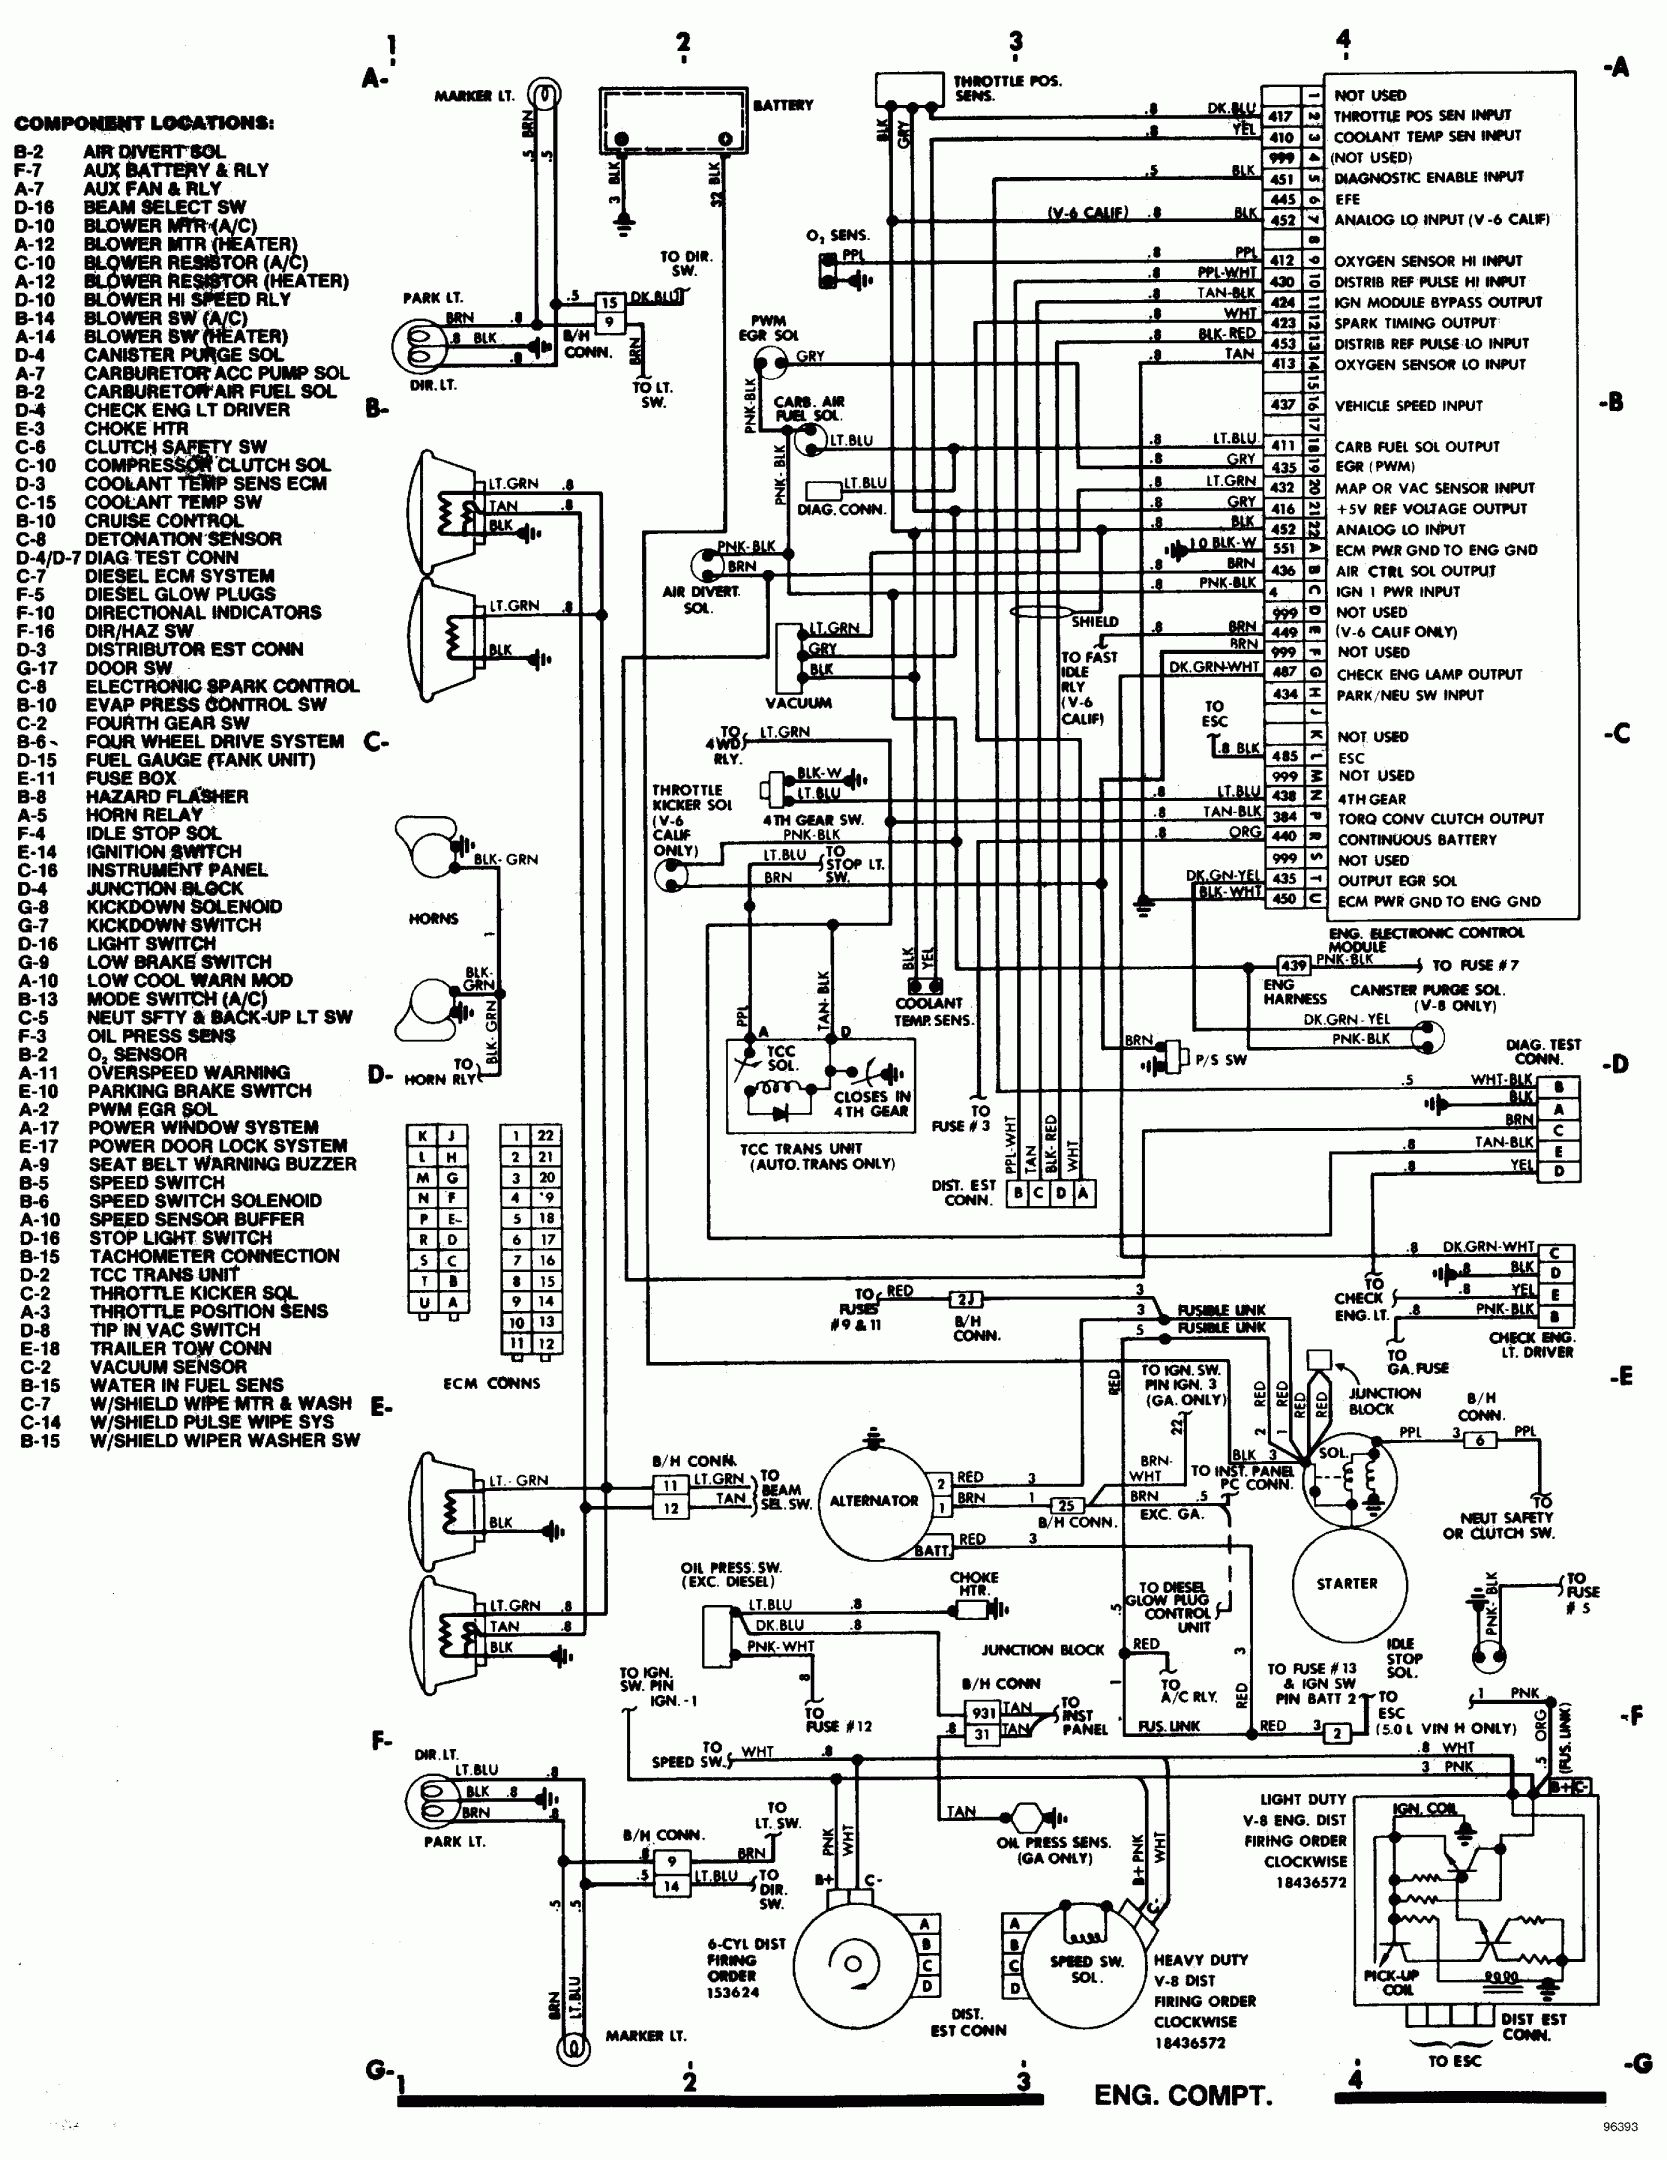 Wiring Diagram For Chevy Pickup With Deisel Engine